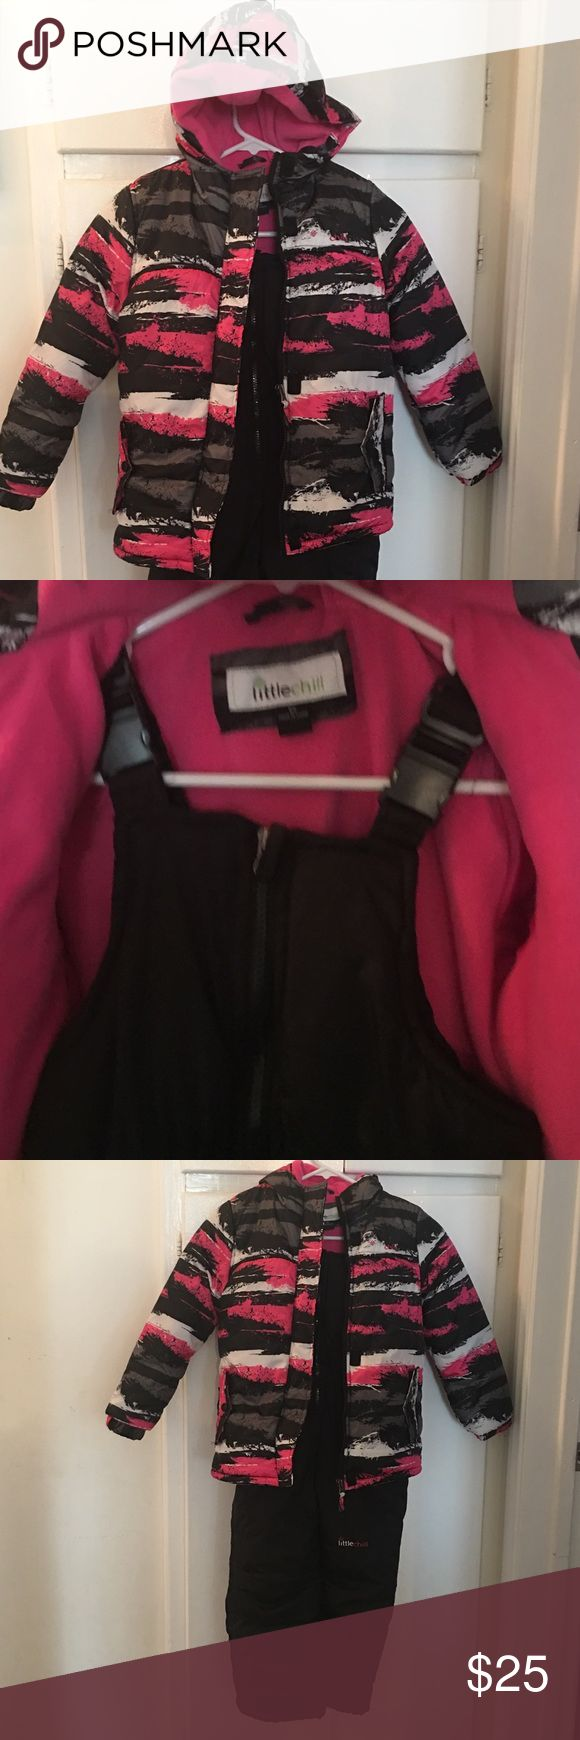 Little Chill Girls Snowsuit size 6x Girls snowsuit in like new condition. Only worn 2 times. Jacket colors are pink, gray, white Ana black, inside is pink. Zip up front and Velcro overlap, front pockets with snap closure. Pants are black and have two front pockets. warm and comfy! Little Chill Jackets & Coats